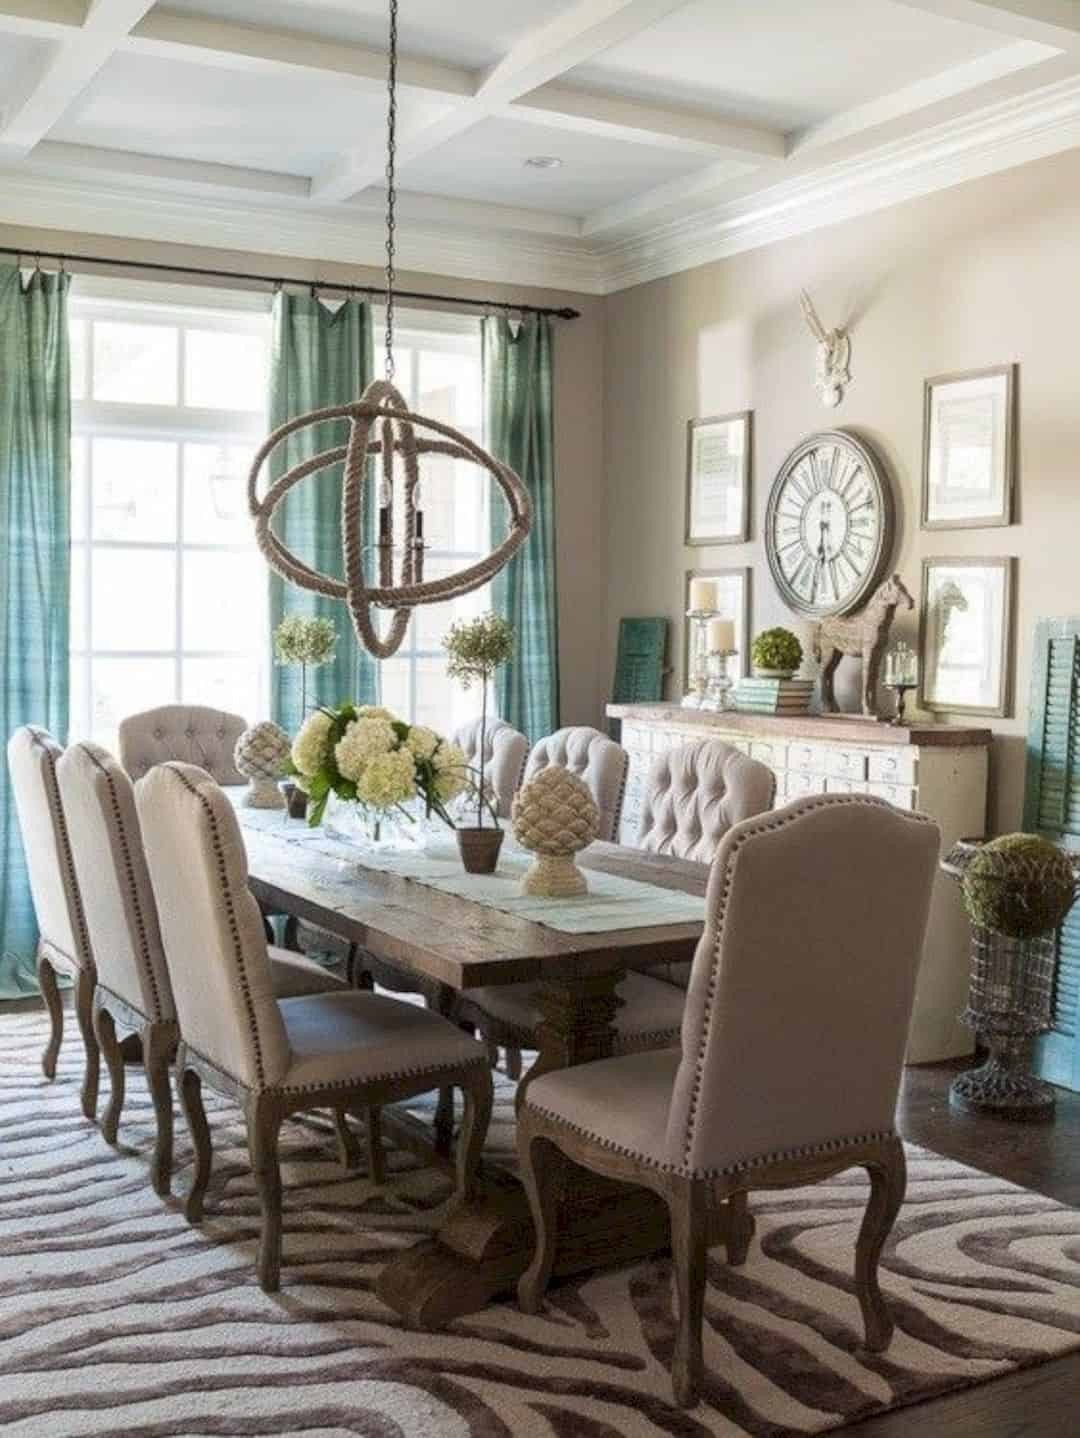 Dining Room Wall Decor Pictures New 16 Dining Room Wall Decorating Ideas